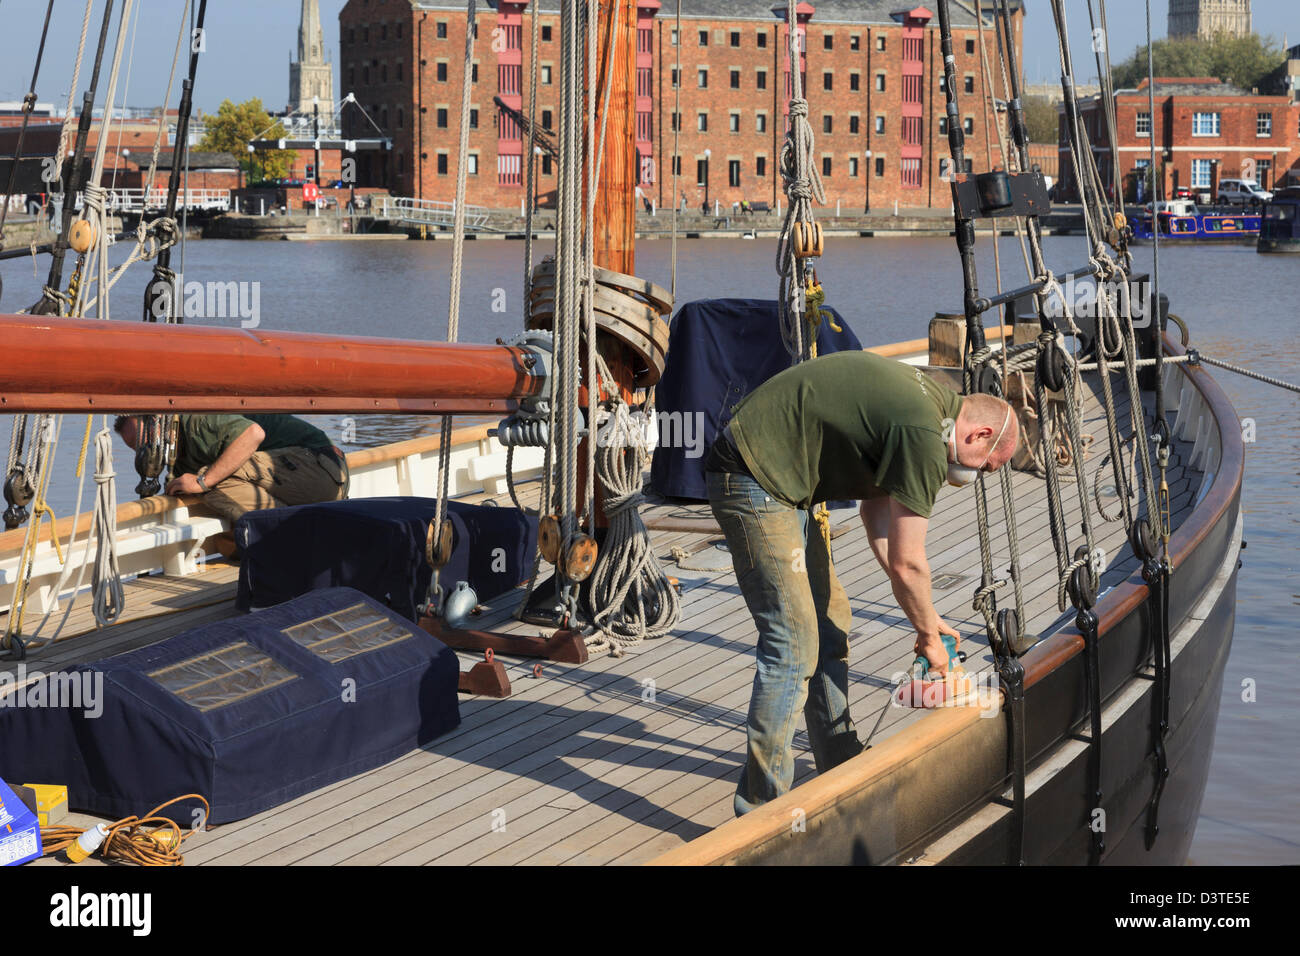 Man sanding wooden deck restoring a classic ship in the boatyard at Gloucester Docks, Gloucestershire, England, - Stock Image